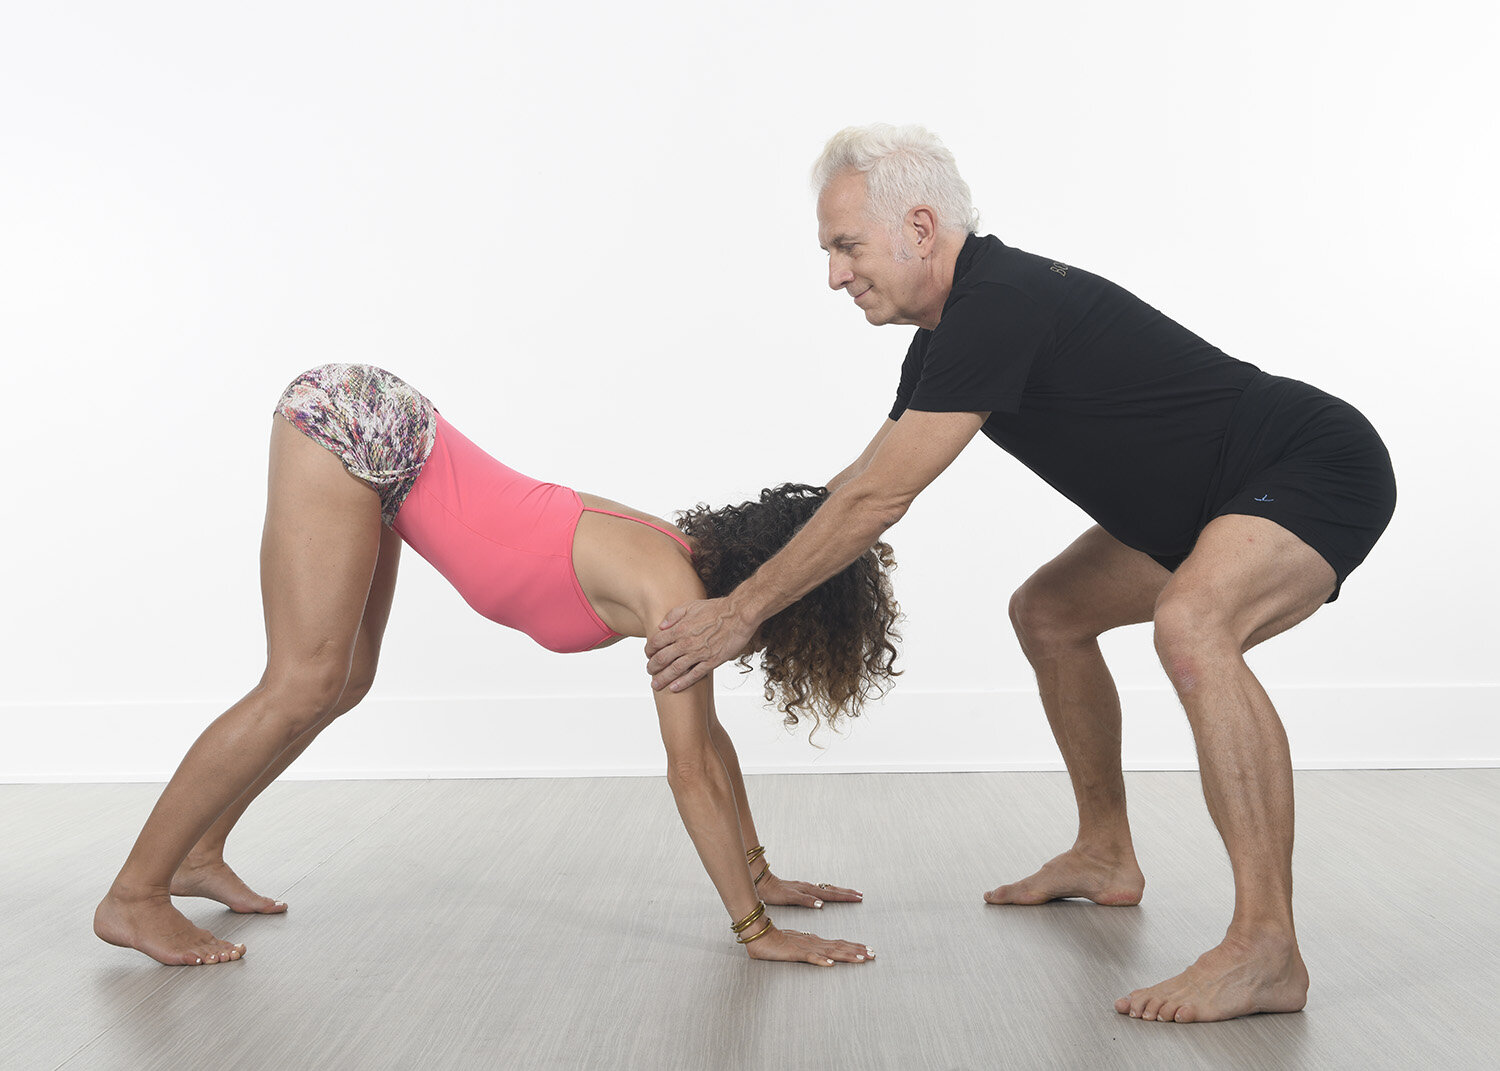 PRIVATE SESSIONS WITH DESI & JOHN - Why do a Bowspring Private?Students will have opportunities to refine the subtle details of the Bowspring method, expand their personal practice, or address therapeutic issues with a one-on-one hour-long session with Desi Springer or John Friend.Privates are Monday 11:30 am - 4:30 pmCosts: $150 each // 60 minutesTo Register for a Private email: desirae@breathandbodyyoga.com